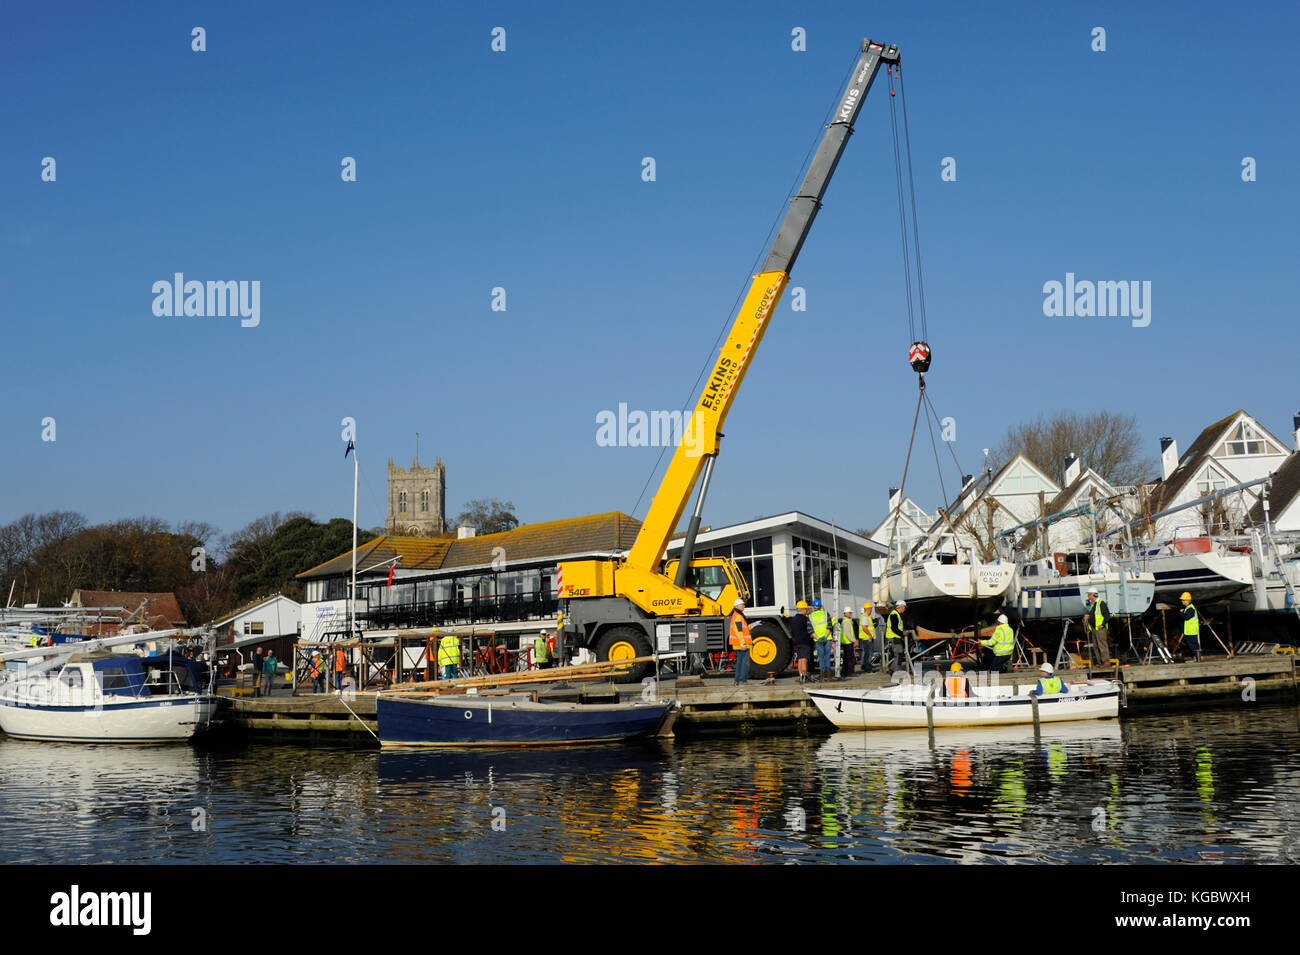 Craning Stock Photos & Craning Stock Images - Alamy